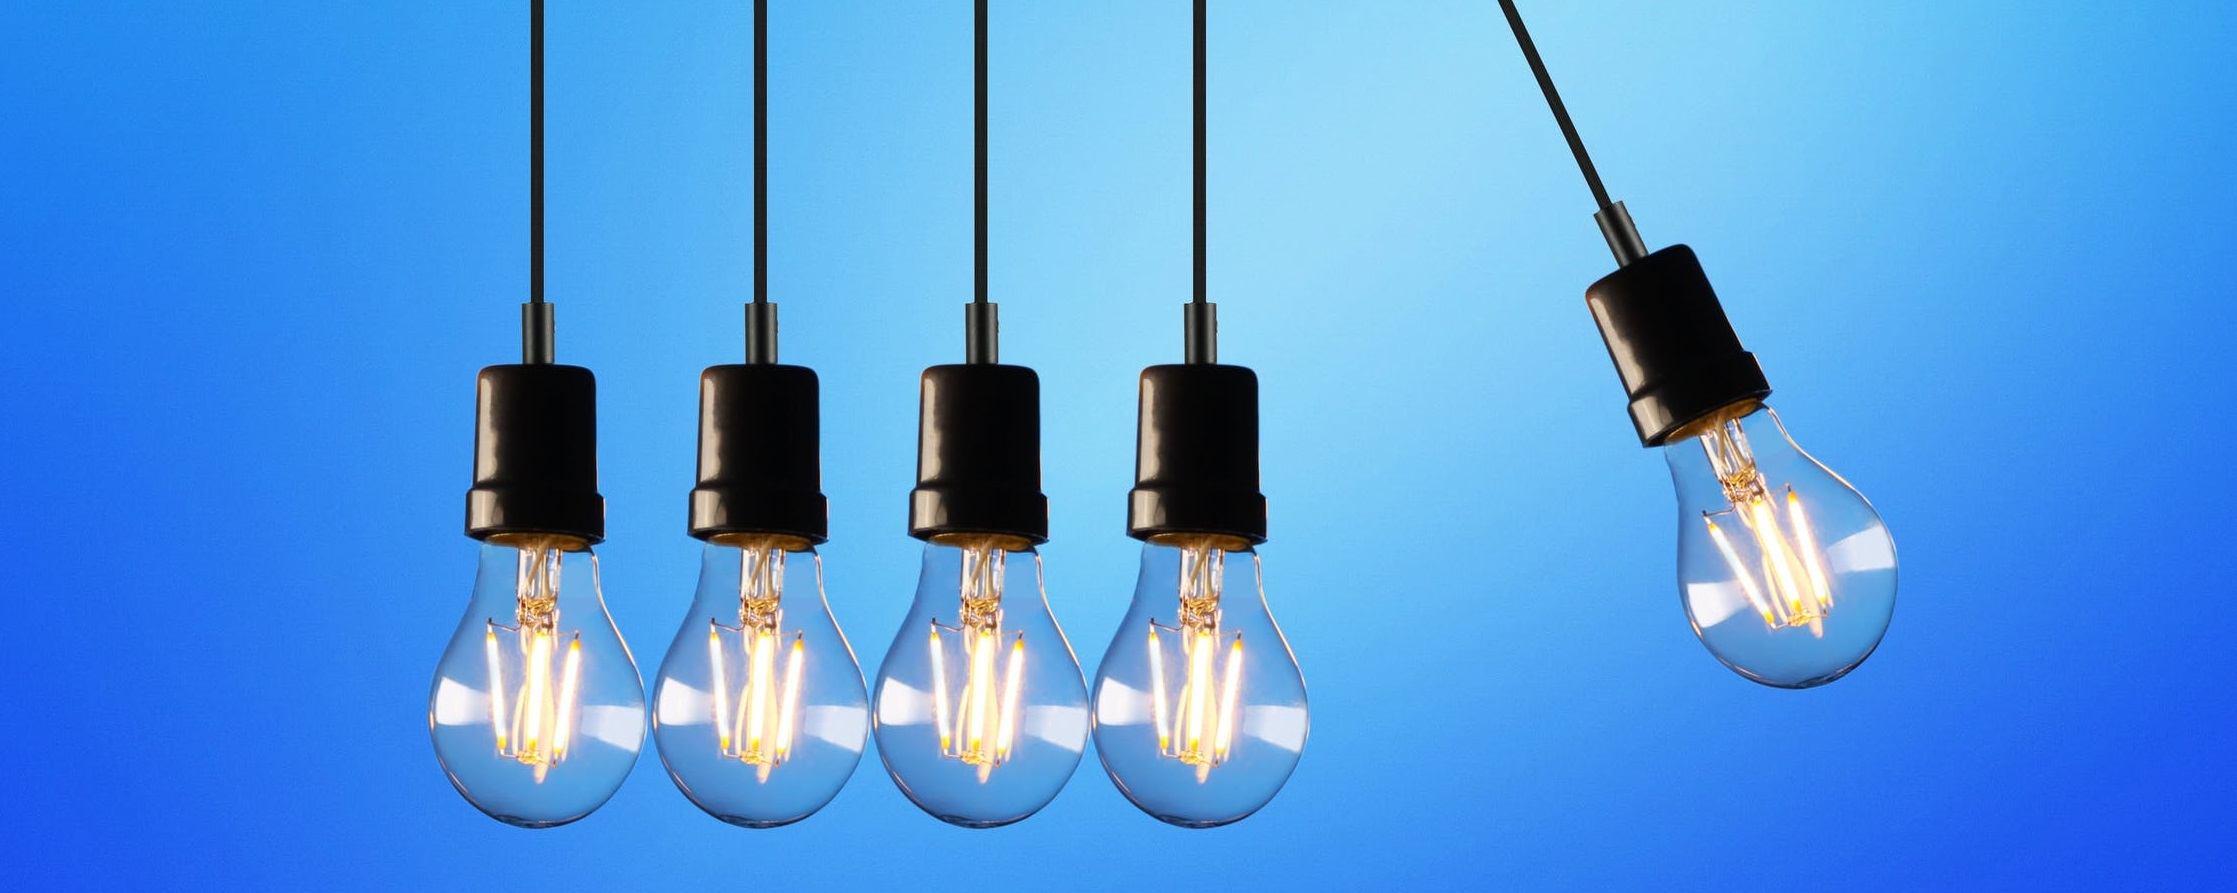 Five bulbs hanging and energy efficiency